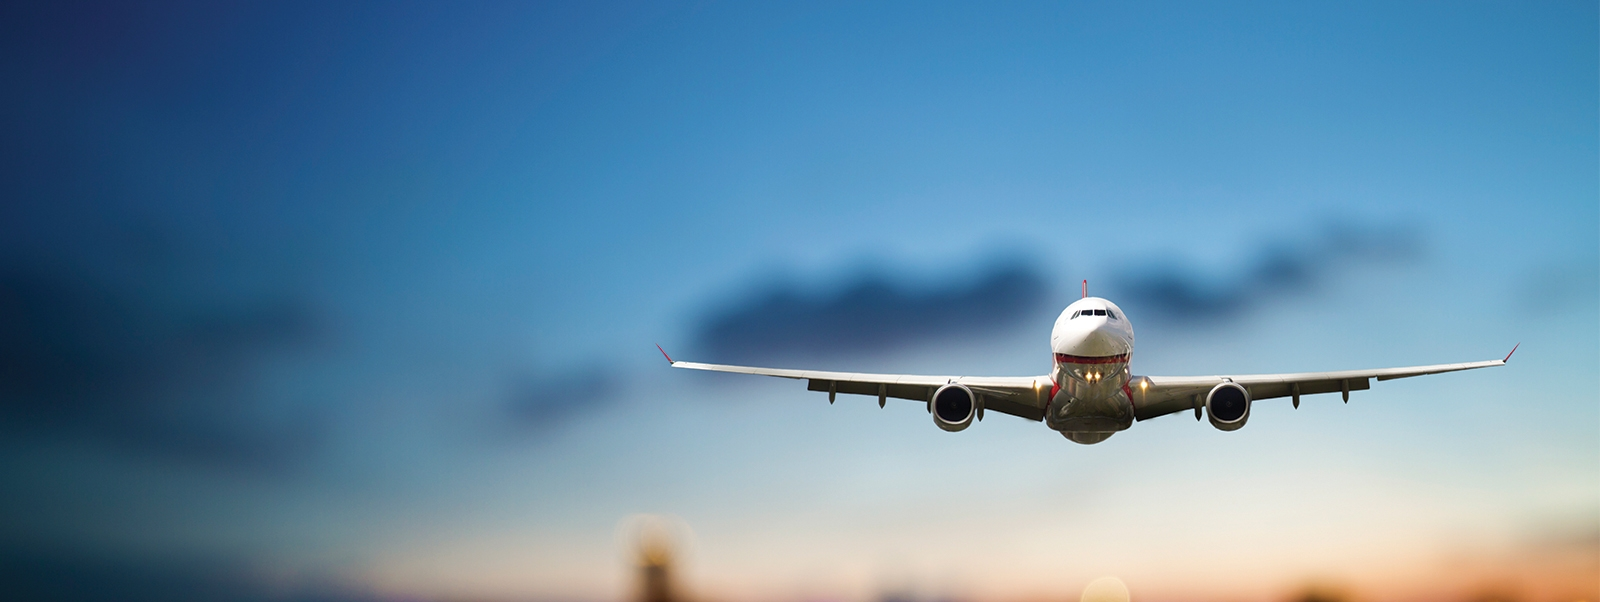 pricing economics of the airline industry A review of history, structure, and competition in the us alrline industry gerald n cook the airline industry has.